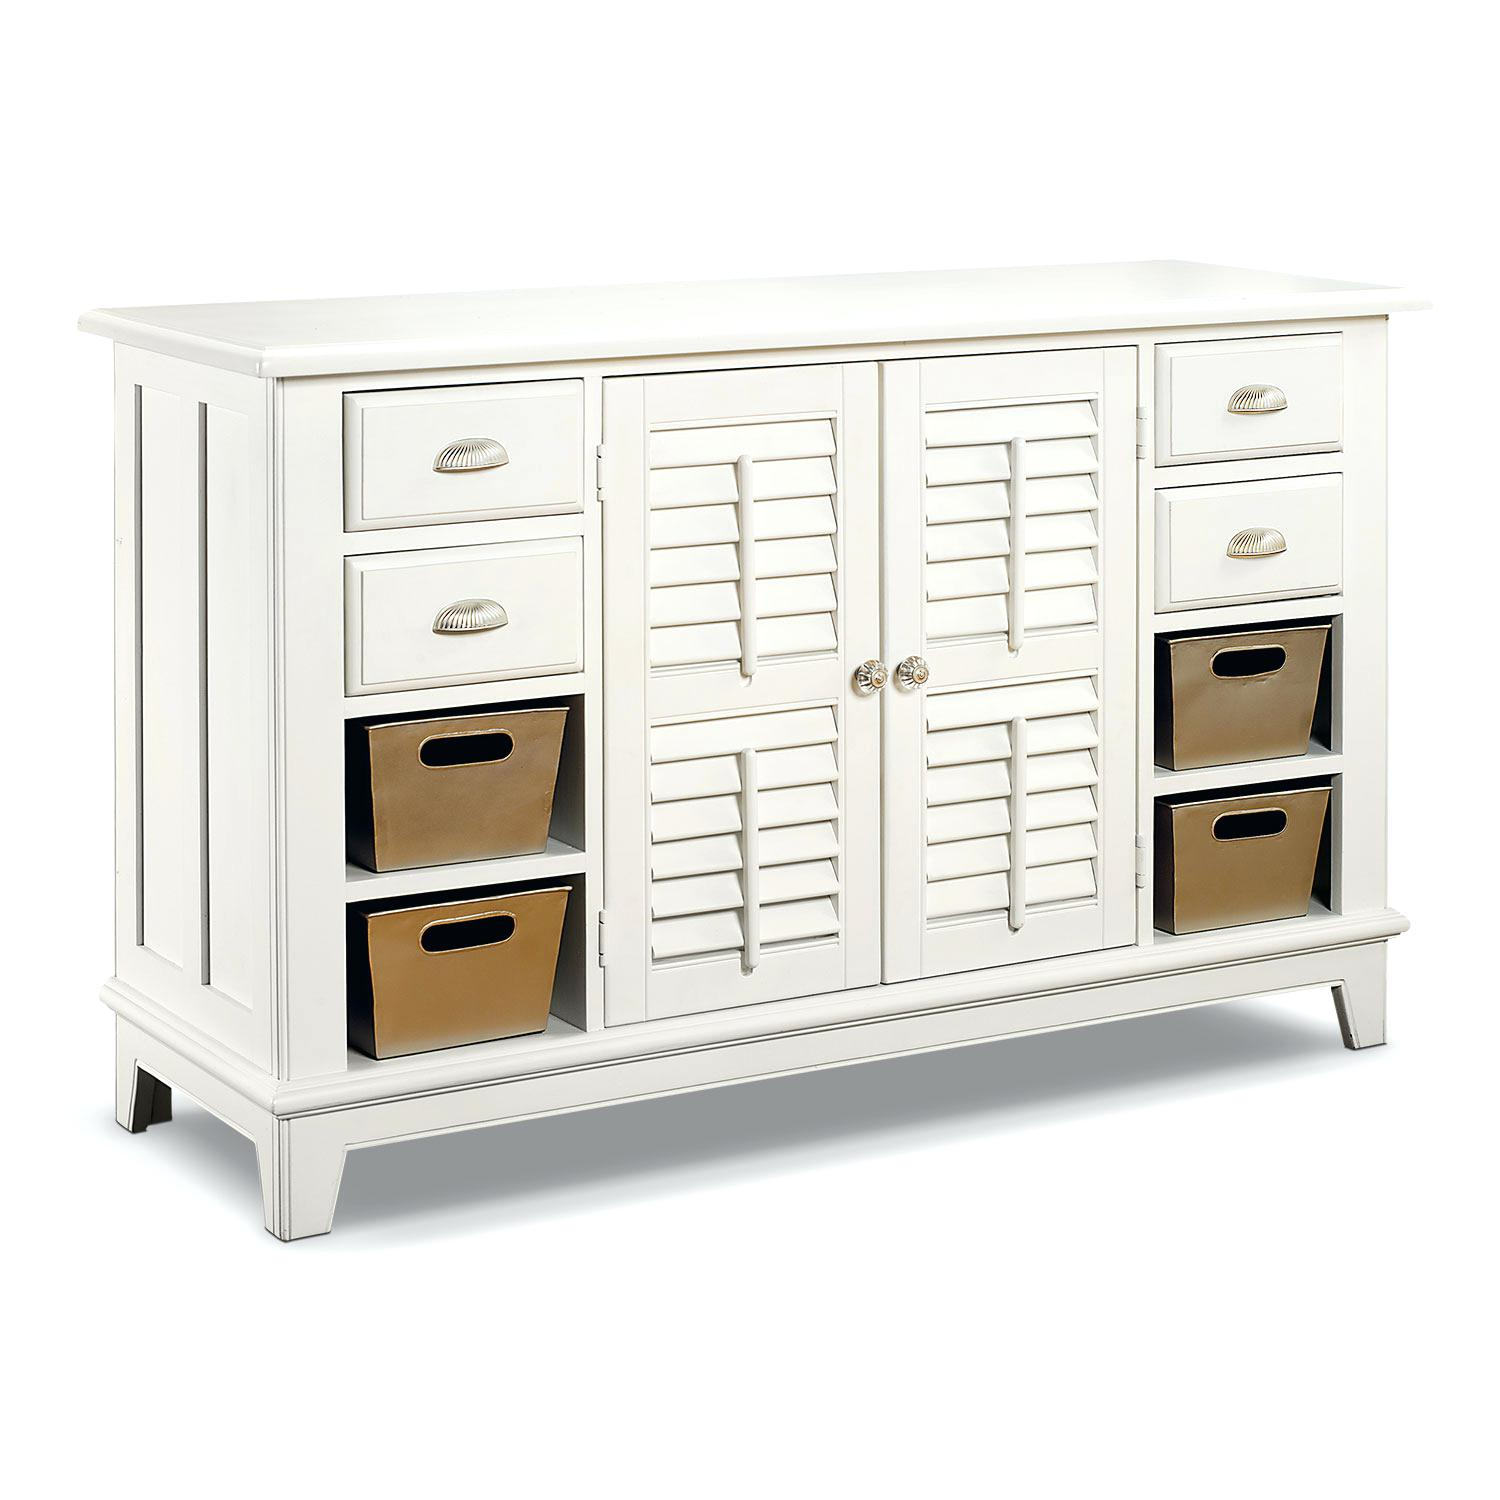 value city furniture dressers bedroom accent and occasional plantation cove sofa table white tables small console with drawers battery operated lamps lighting porch side hourglass